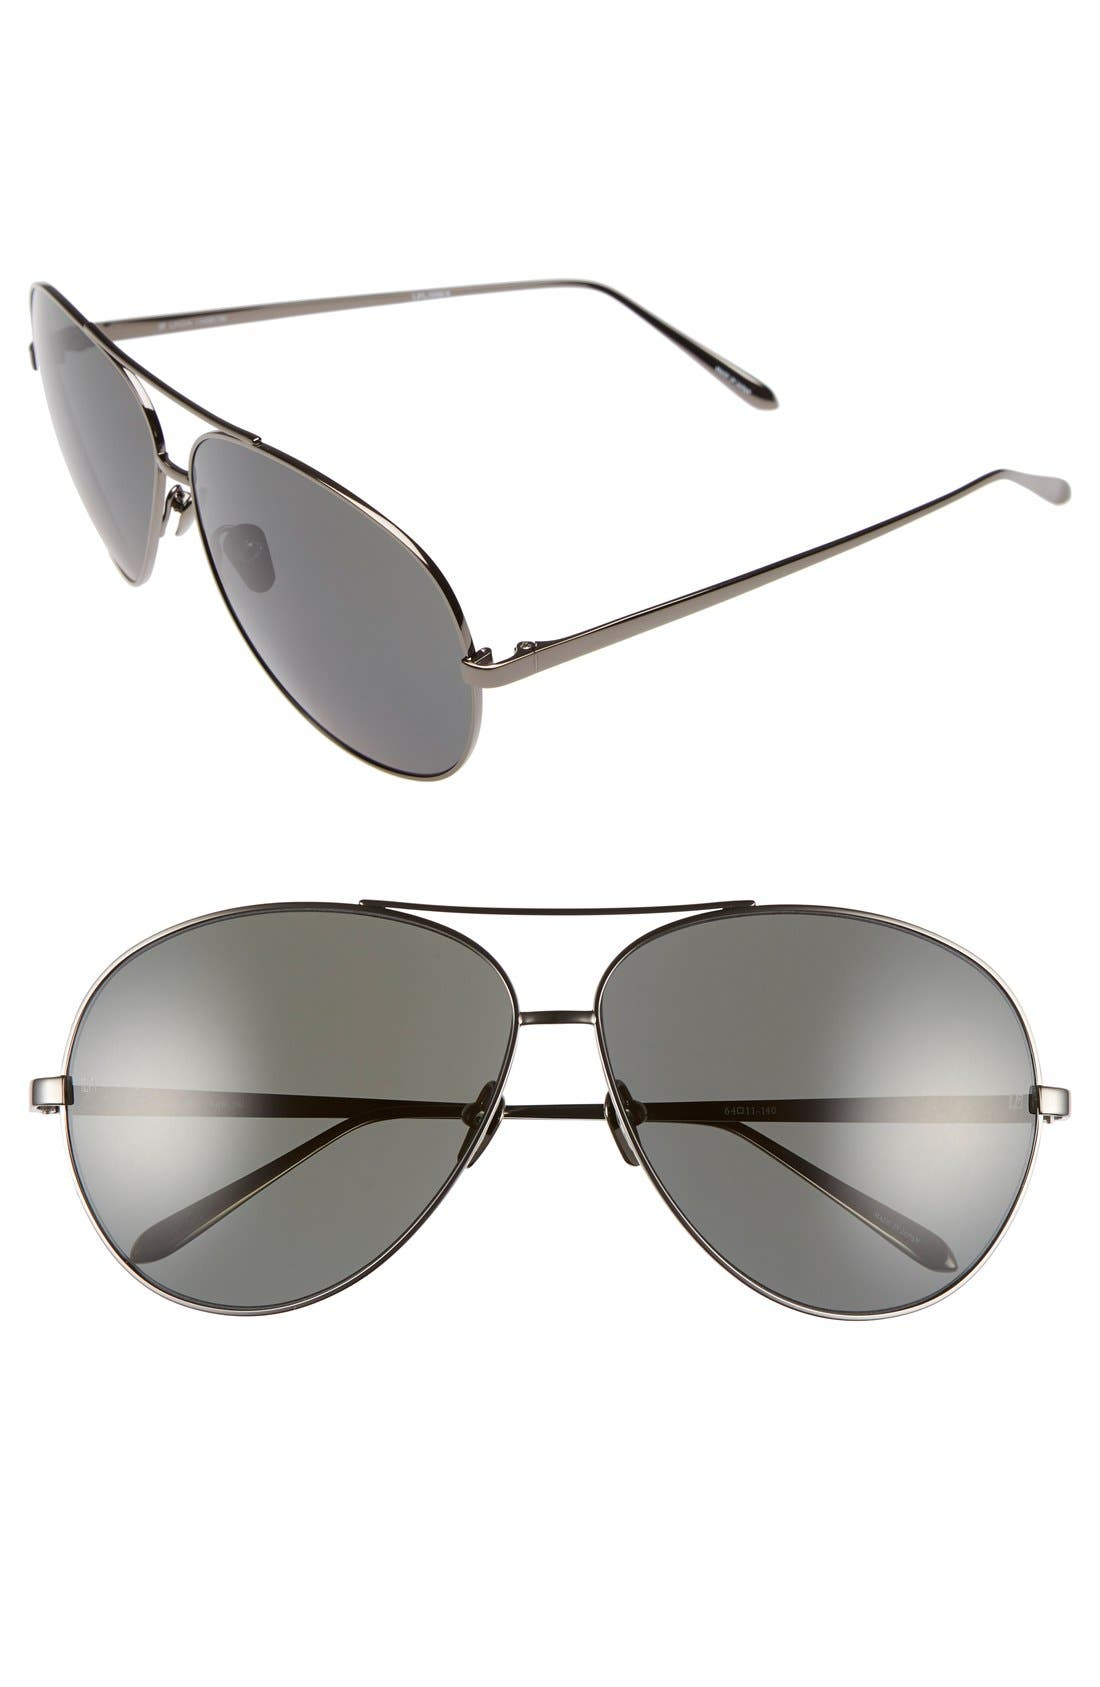 LINDA FARROW 64mm Aviator Sunglasses